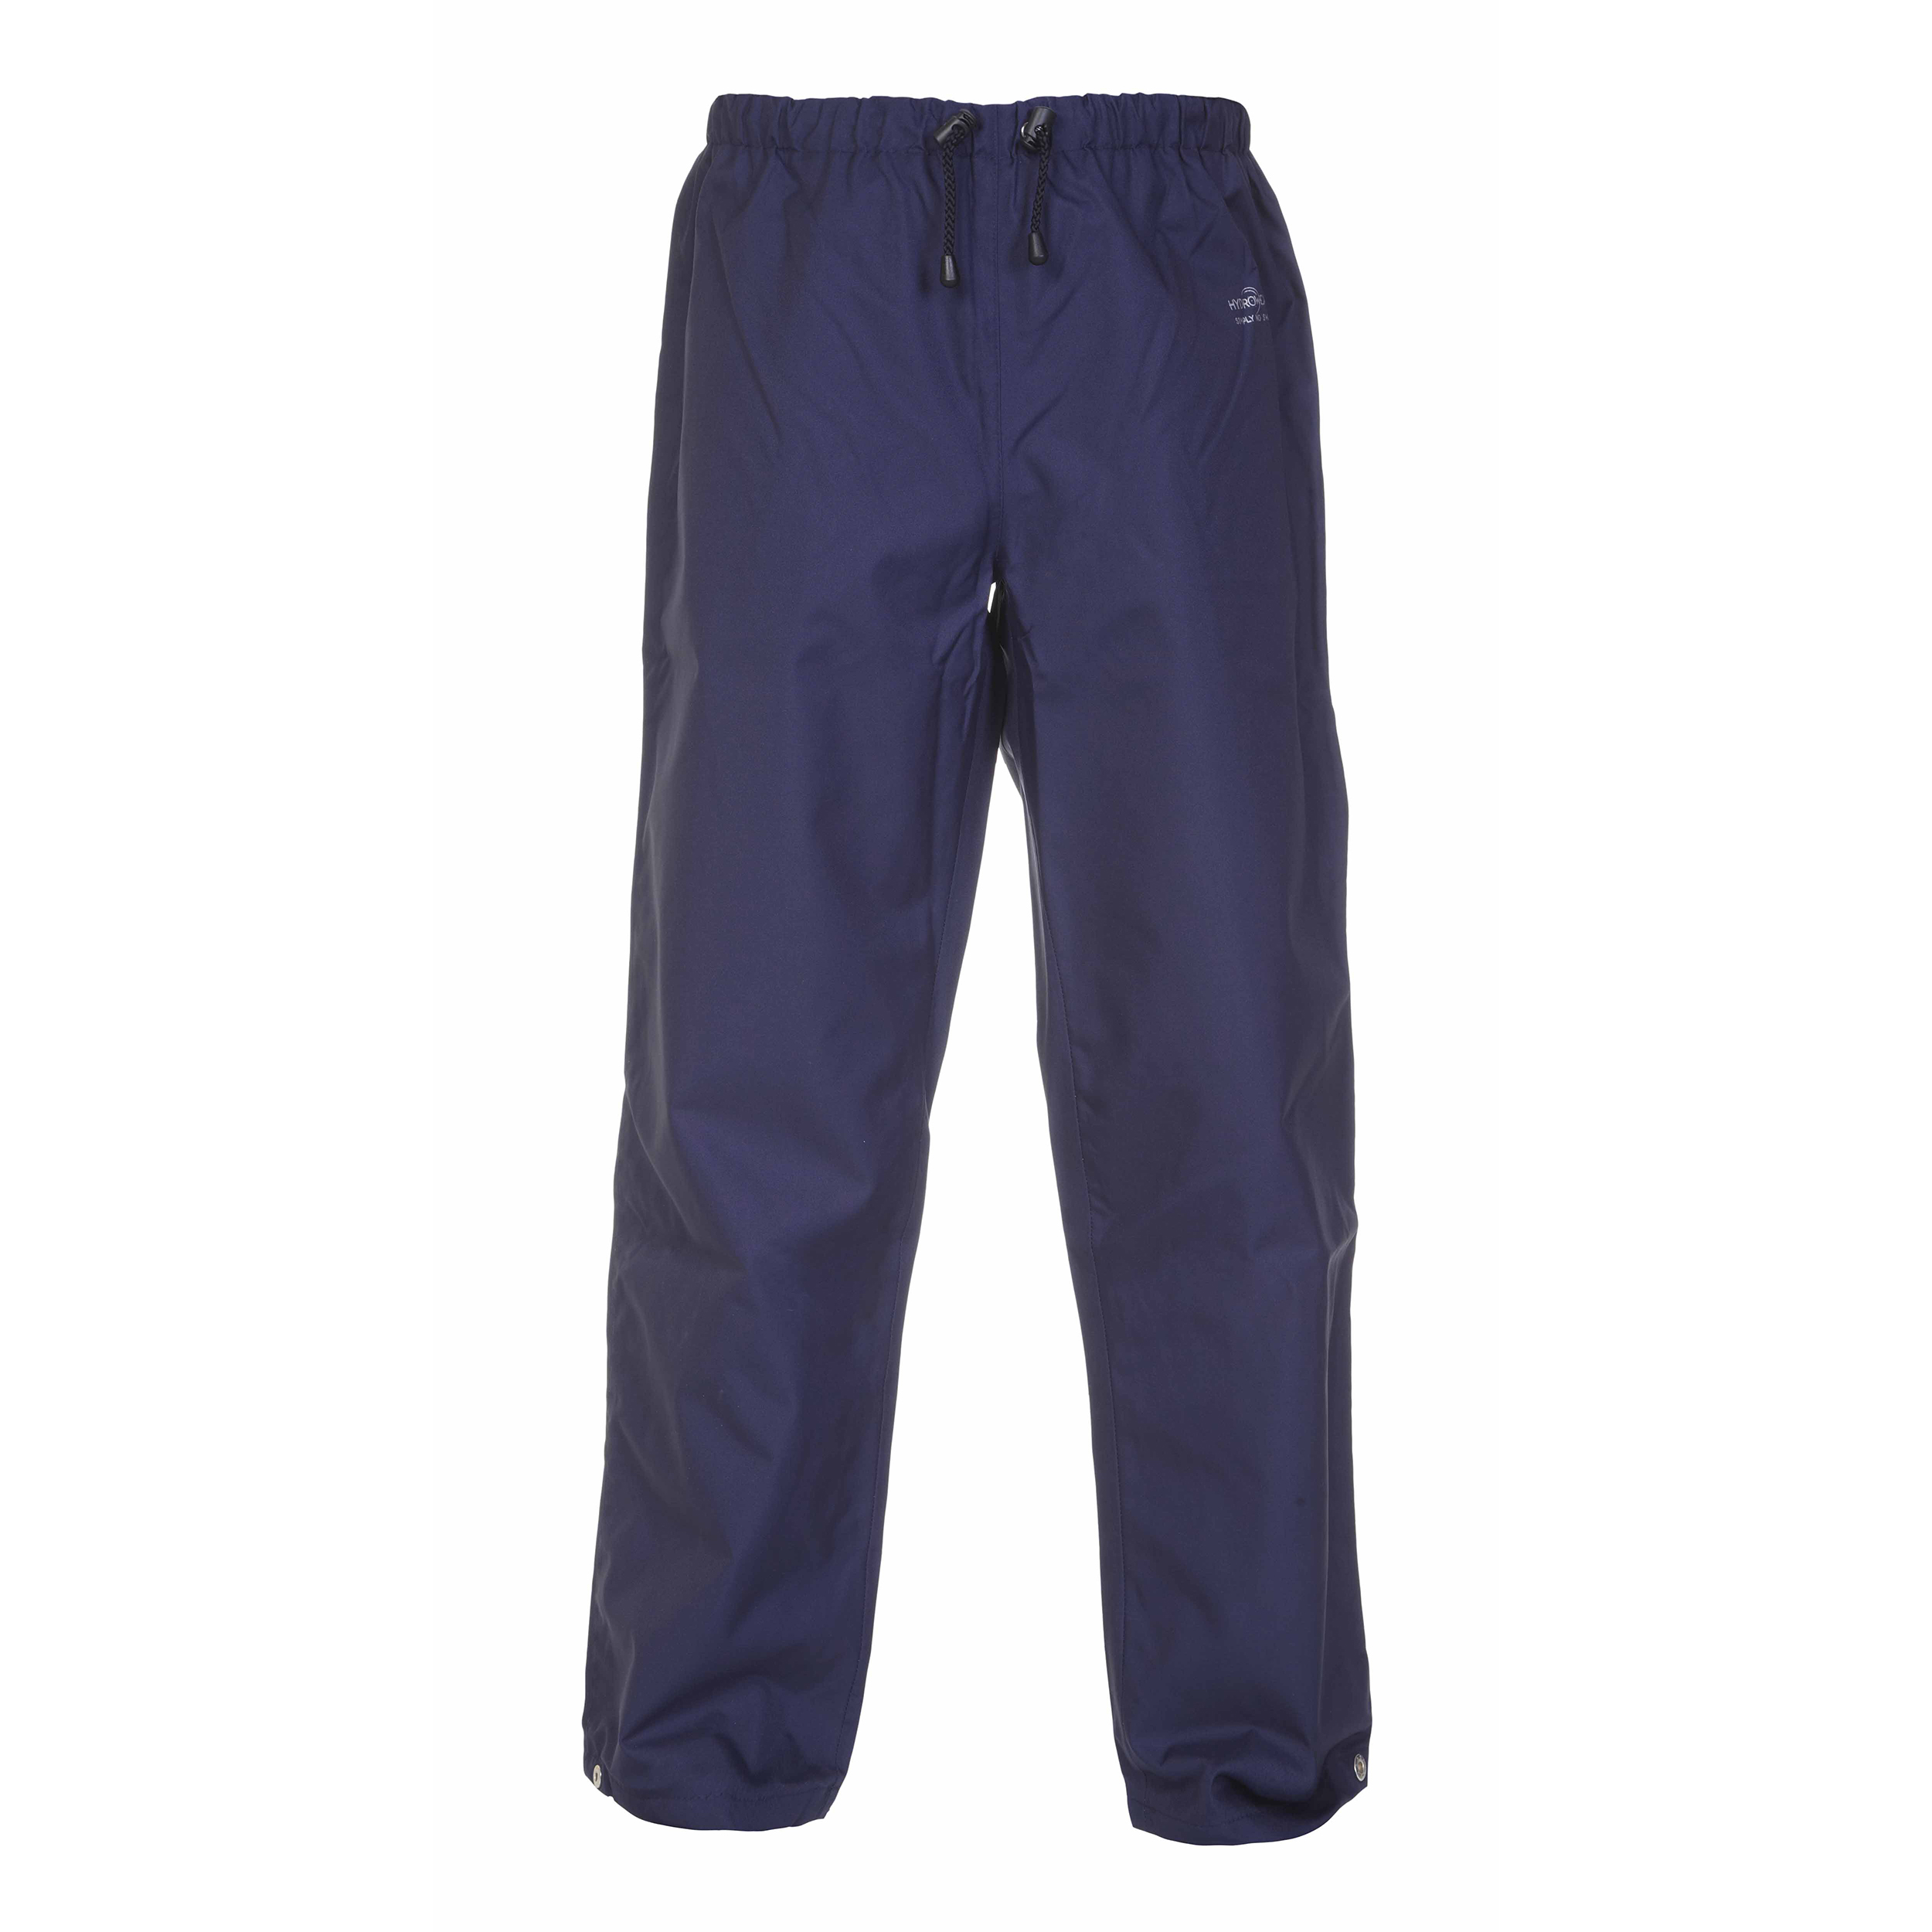 Mens slacks or trousers or shorts Hydowear Utrecht SNS Waterproof Trousers Small Navy Ref HYD072350NS *Up to 3 Day Leadtime*